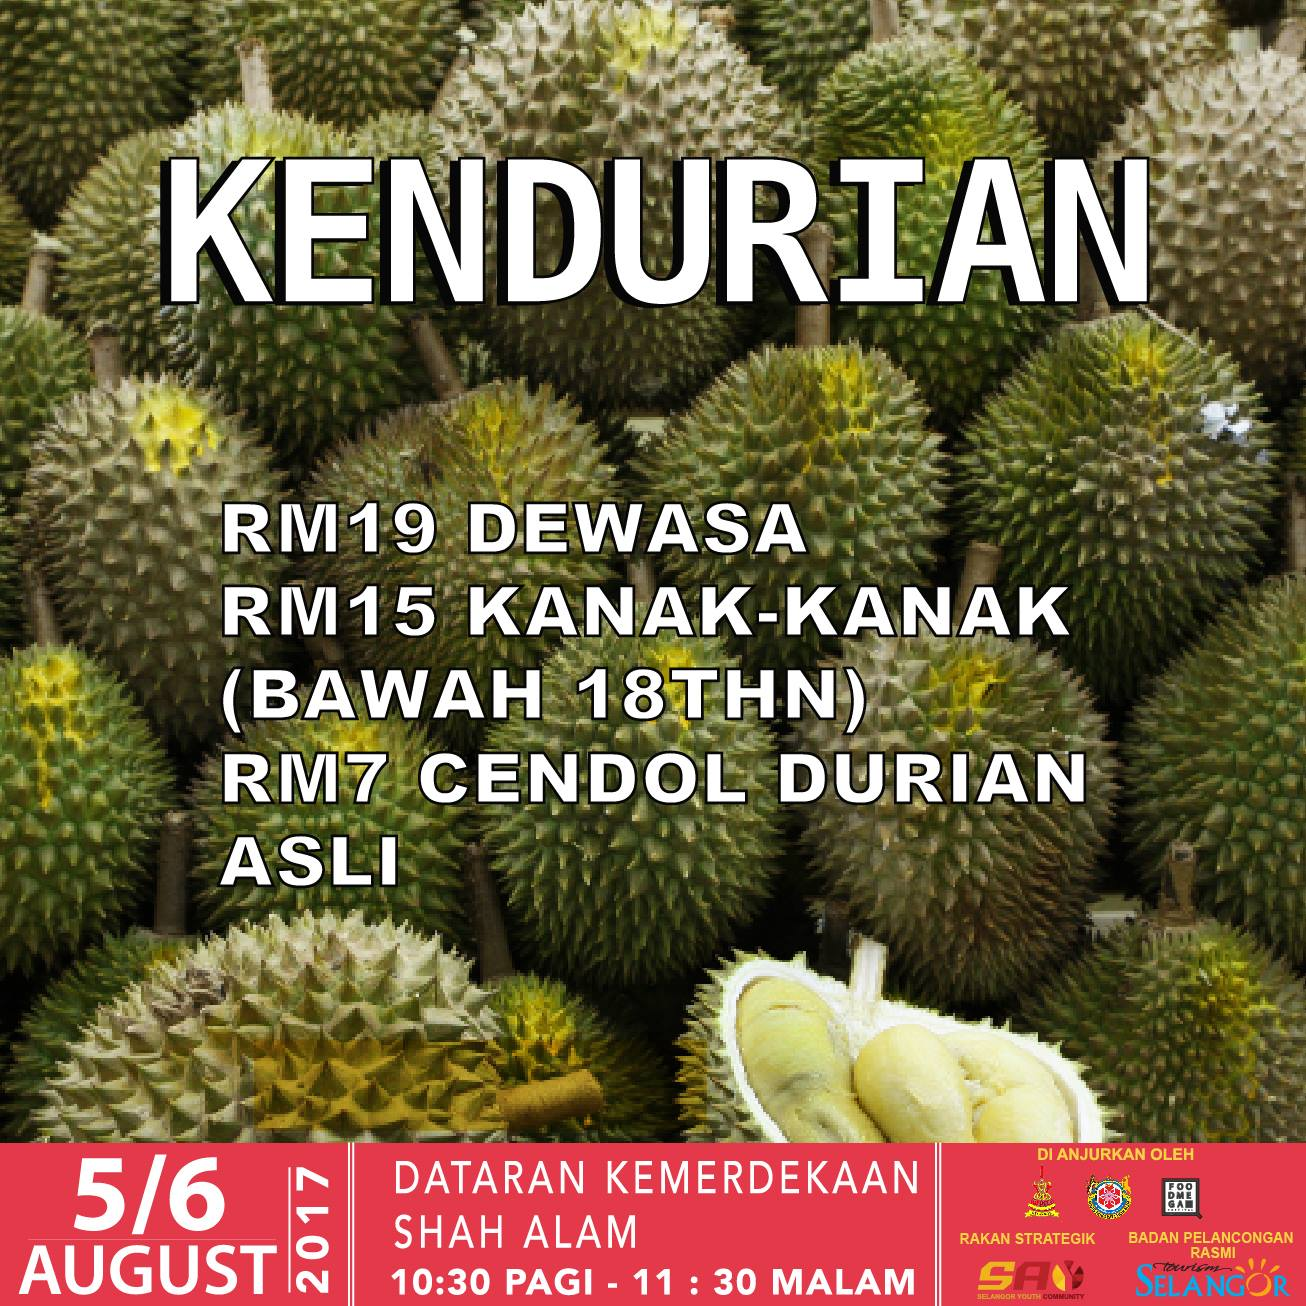 All You Can Eat Durian Buffet Price Adult Rm19 Child Rm15 Shah Cream Malam Ga 6 Alam 5 August 2017